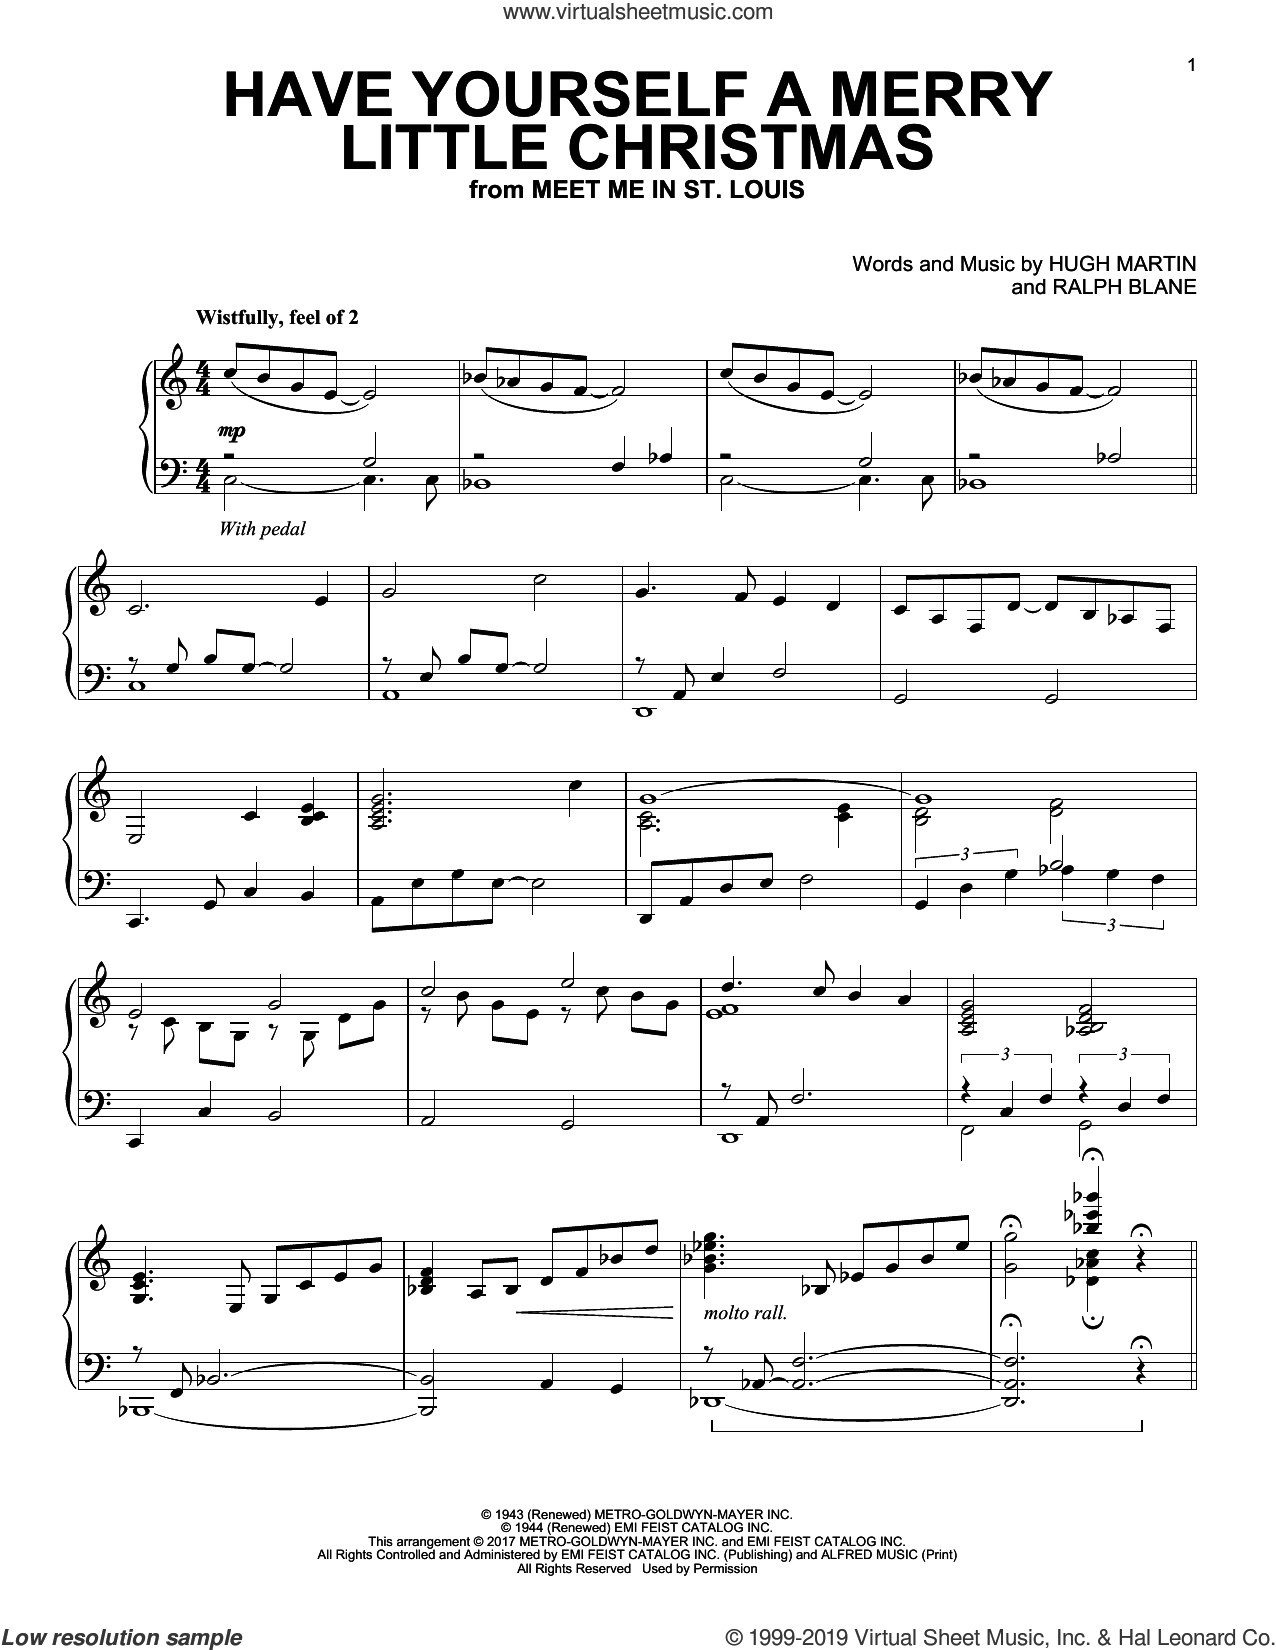 Have Yourself A Merry Little Christmas [Jazz version] sheet music for piano solo by Hugh Martin and Ralph Blane, intermediate skill level